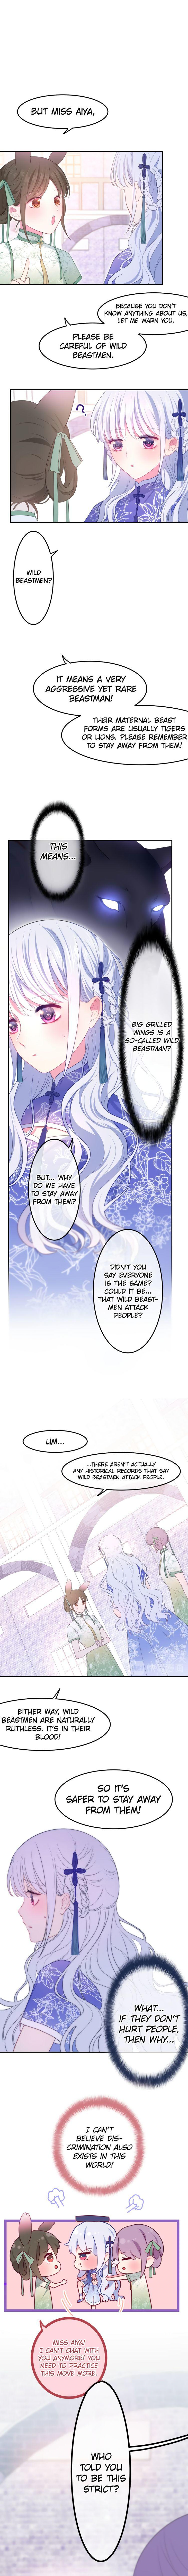 Monster: The Quiet Beast'S Warmth Chapter 5 page 3 - Mangakakalots.com